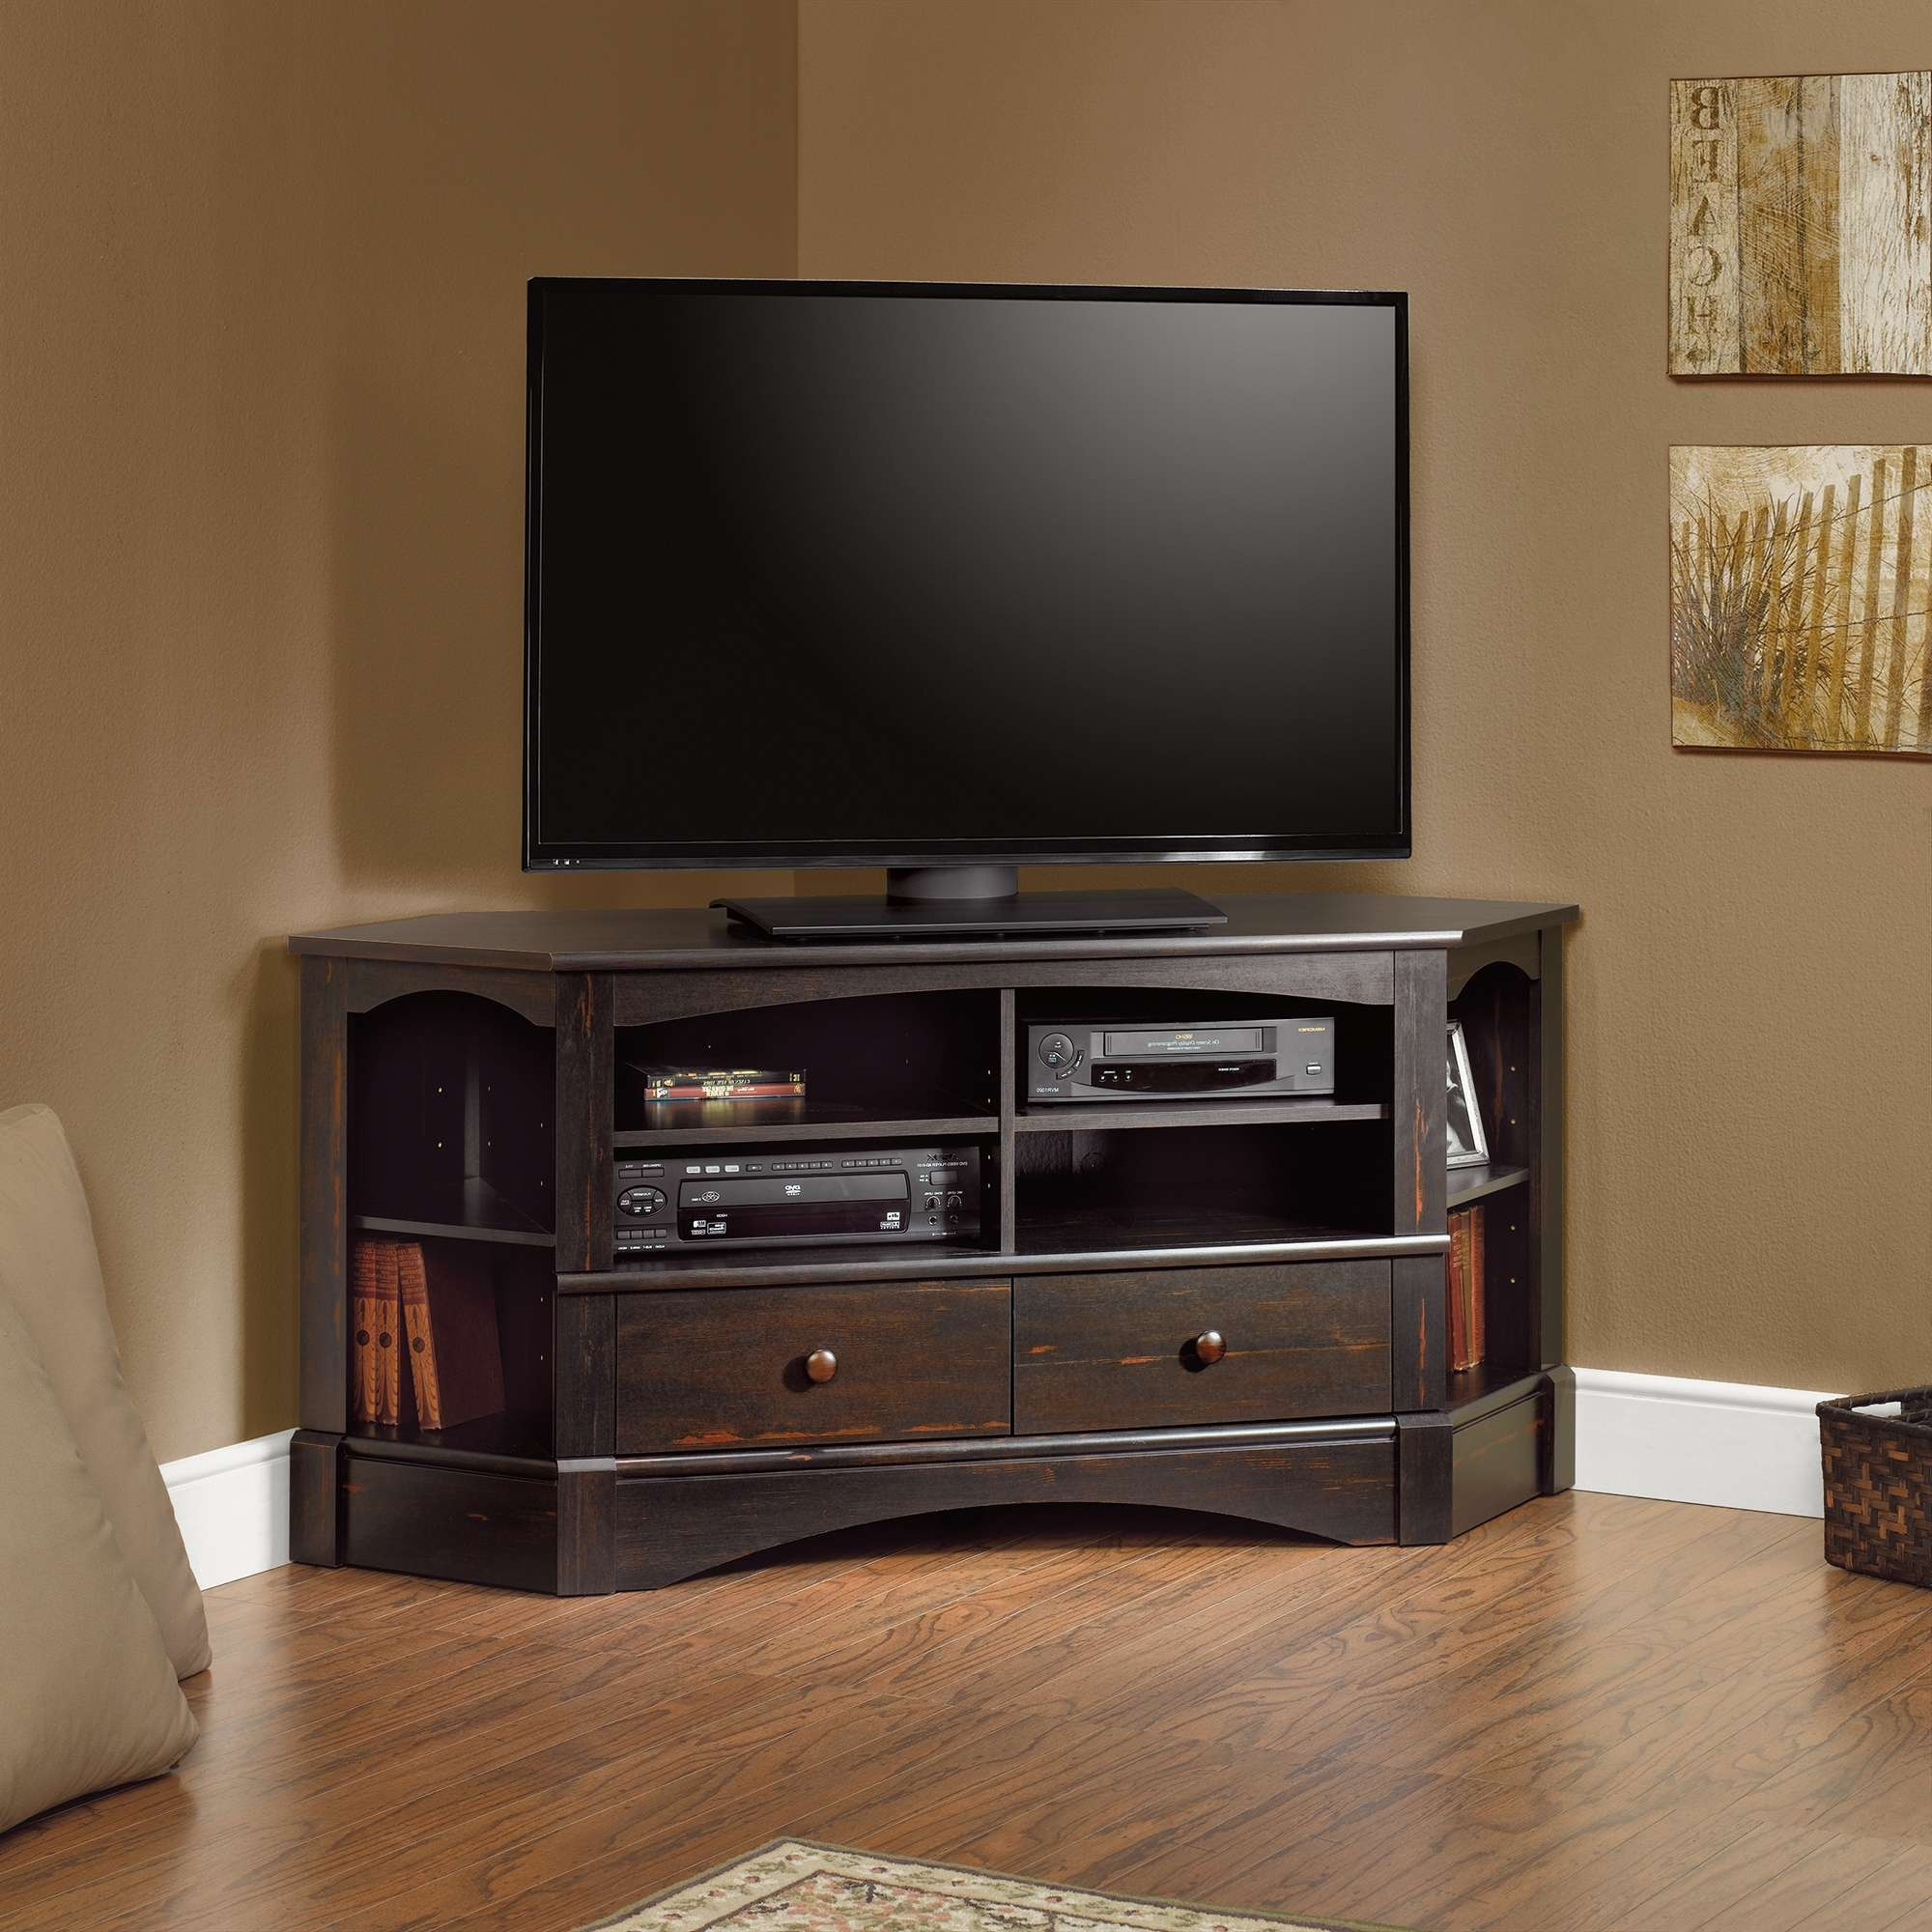 Harbor View | Corner Entertainment Credenza | 402902 | Sauder With Tv Stands For Corners (View 2 of 20)